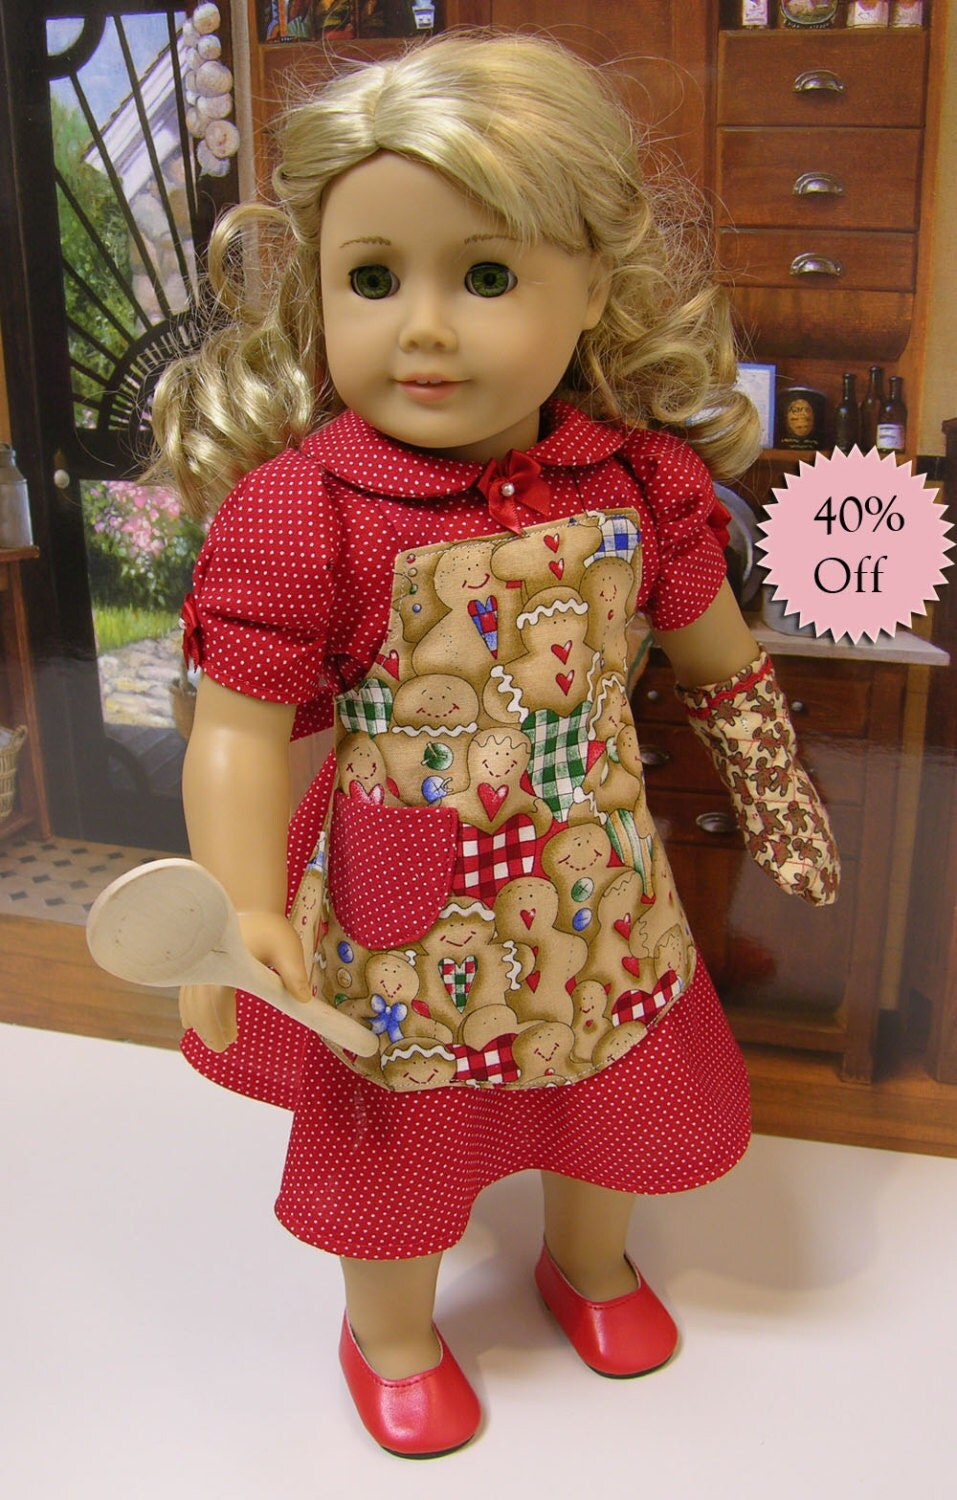 Gingerbread cookies vintage styled dress apron and oven